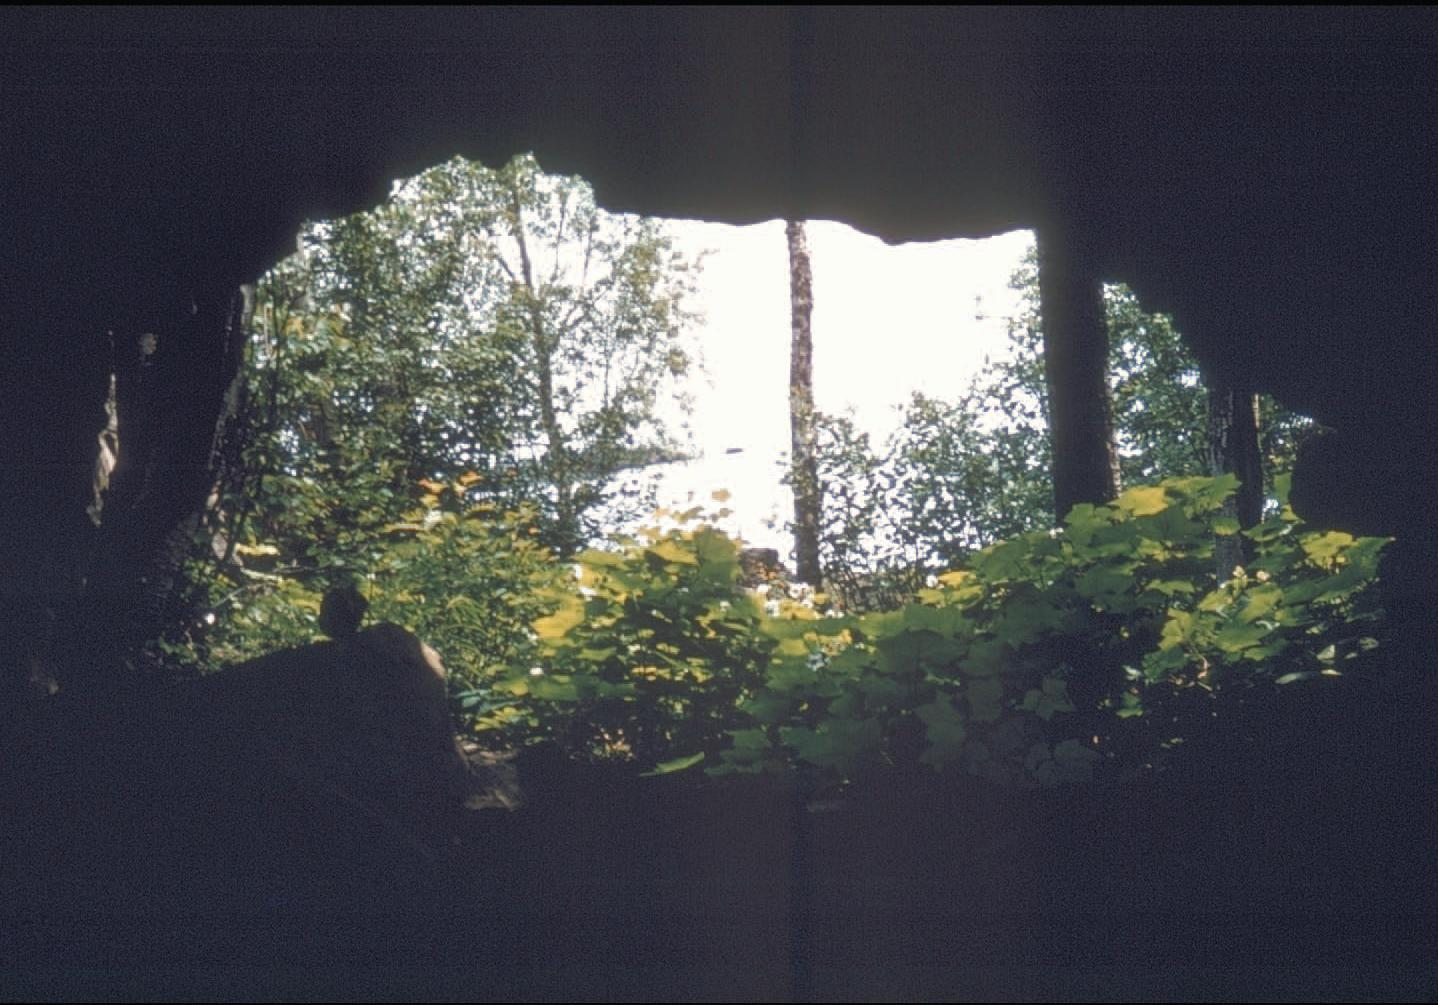 Entrance to one of the shafts at the site